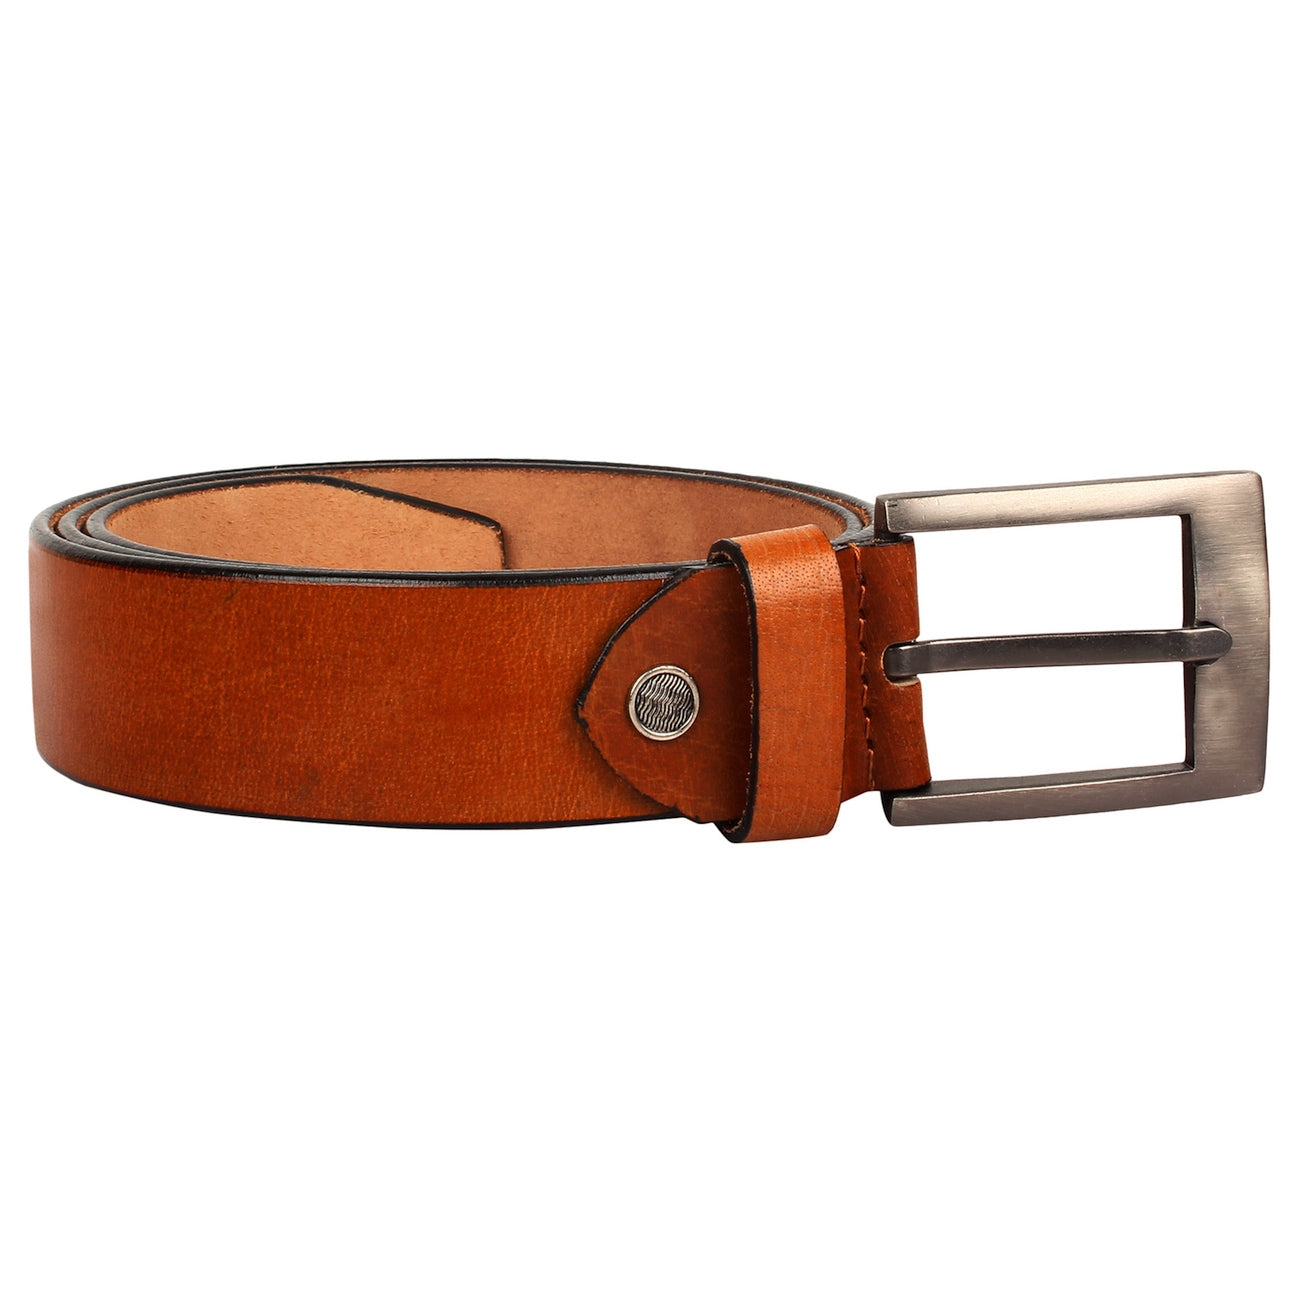 SeeandWear Genuine Leather Tan Color Formal Casual Belt For Men (35 MM Wide)